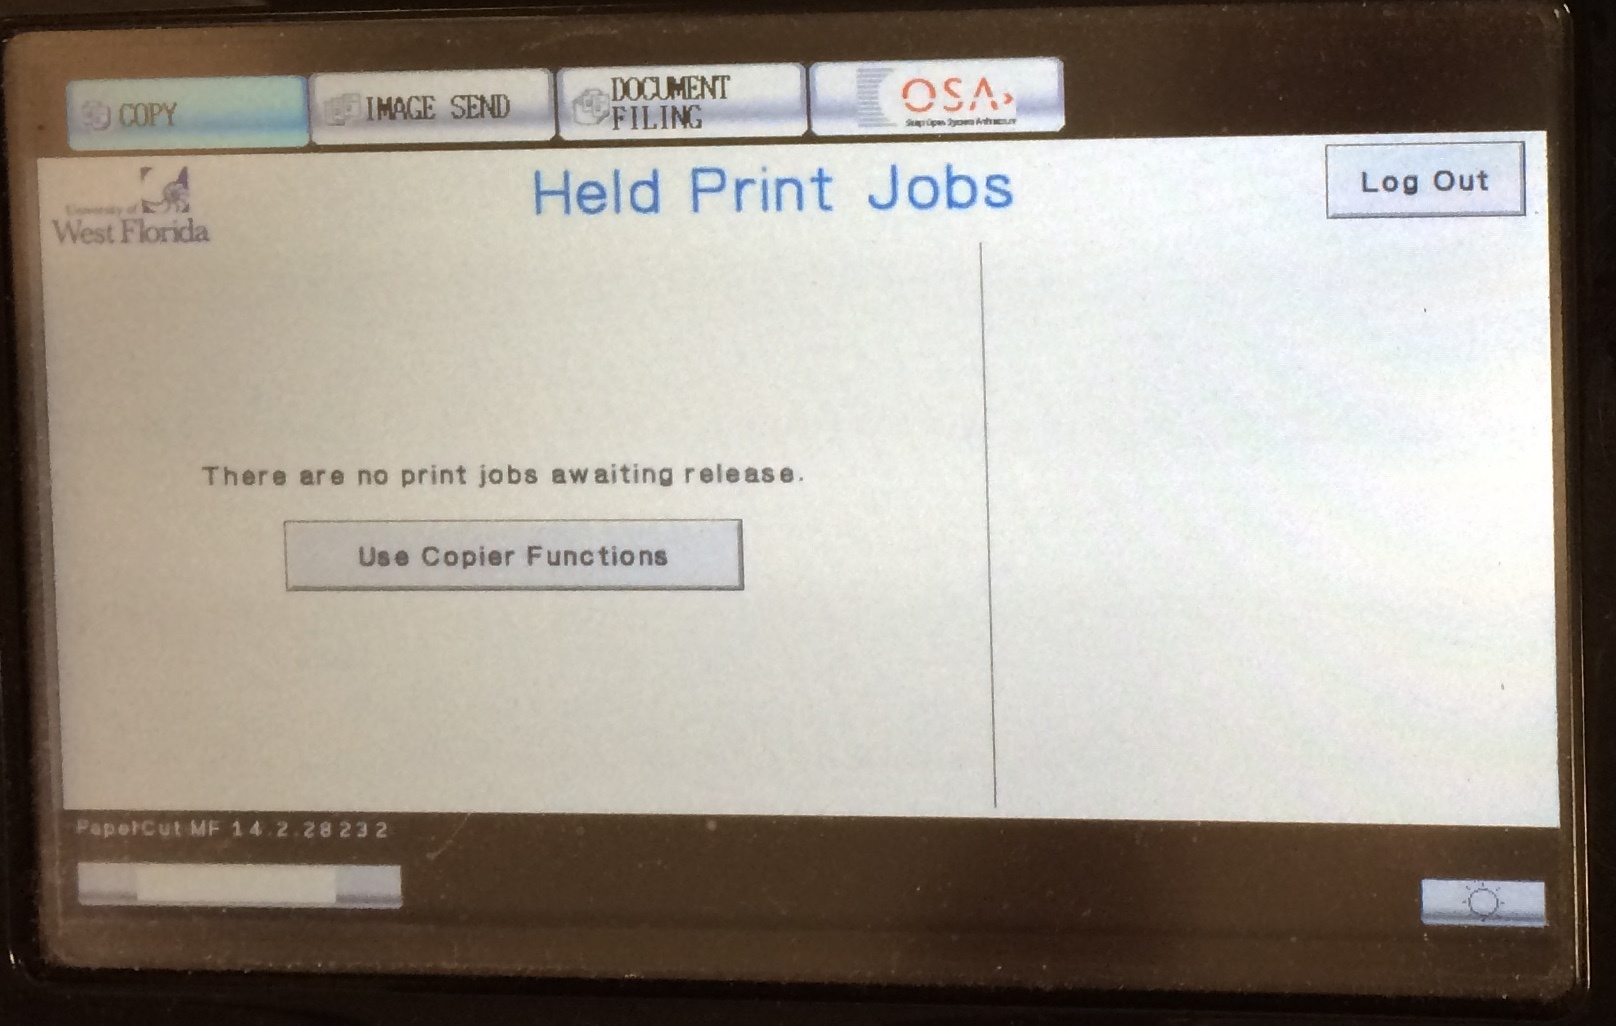 held print jobs screen with no current print jobs